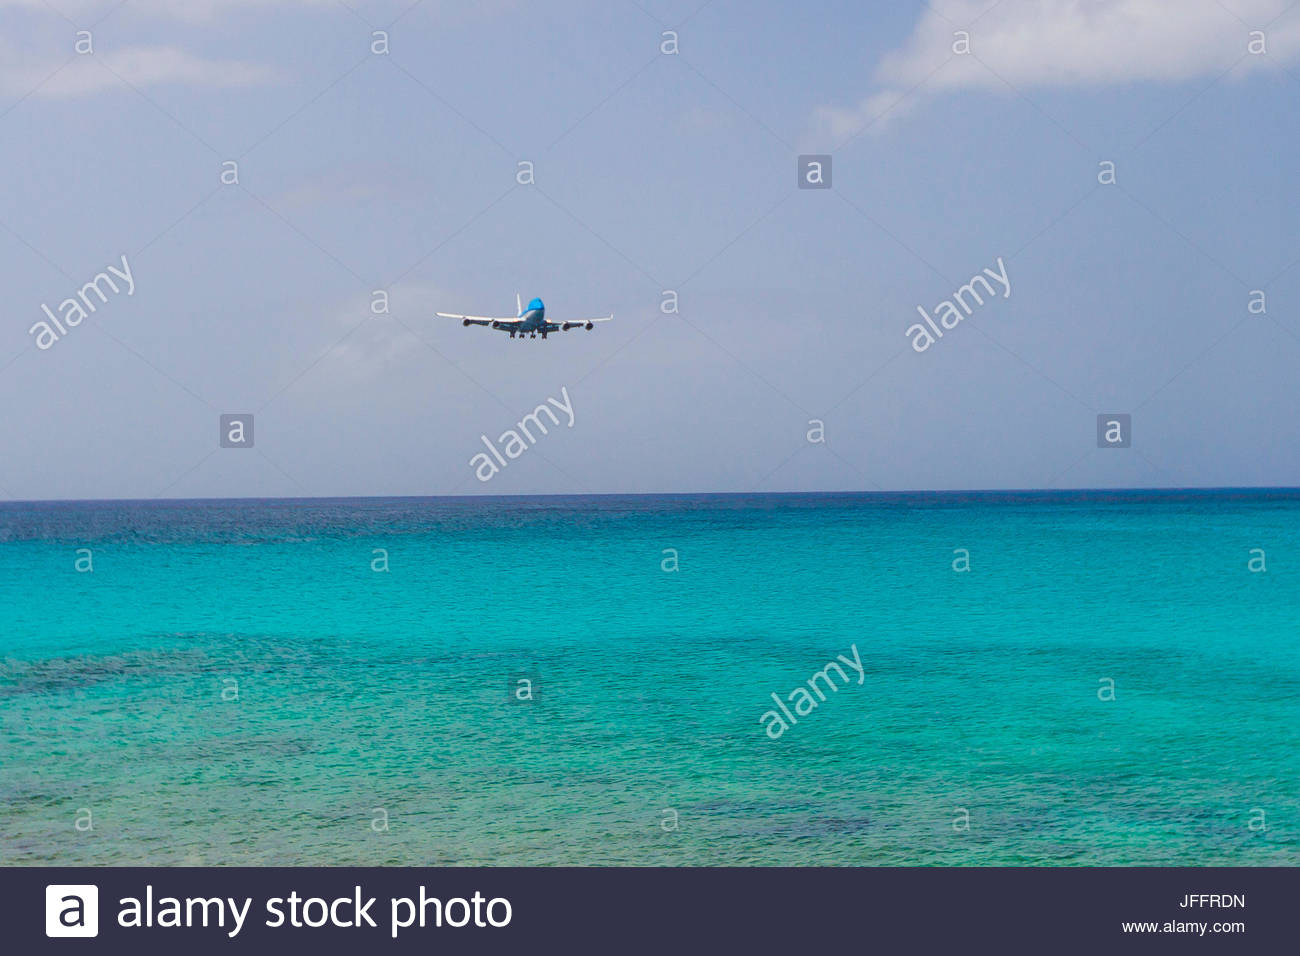 A jumbo jet airplane flying low over the Atlantic Ocean before landing at Princess Juliana Airport. - Stock Image